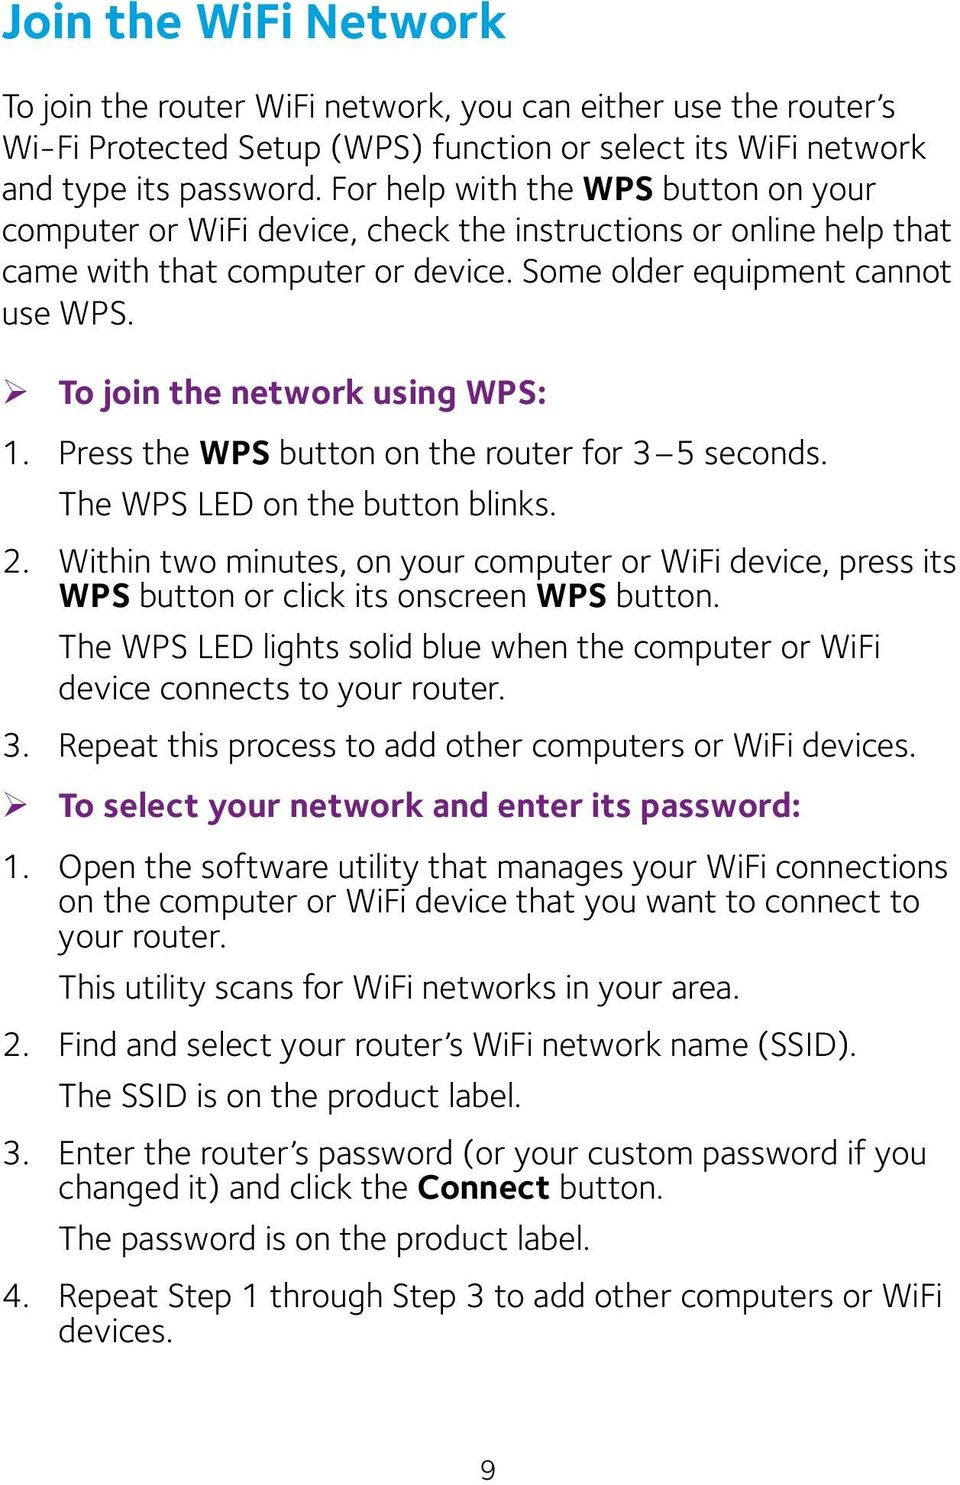 ¾ To join the network using WPS: 1. Press the WPS button on the router for 3 5 seconds. The WPS LED on the button blinks. 2.